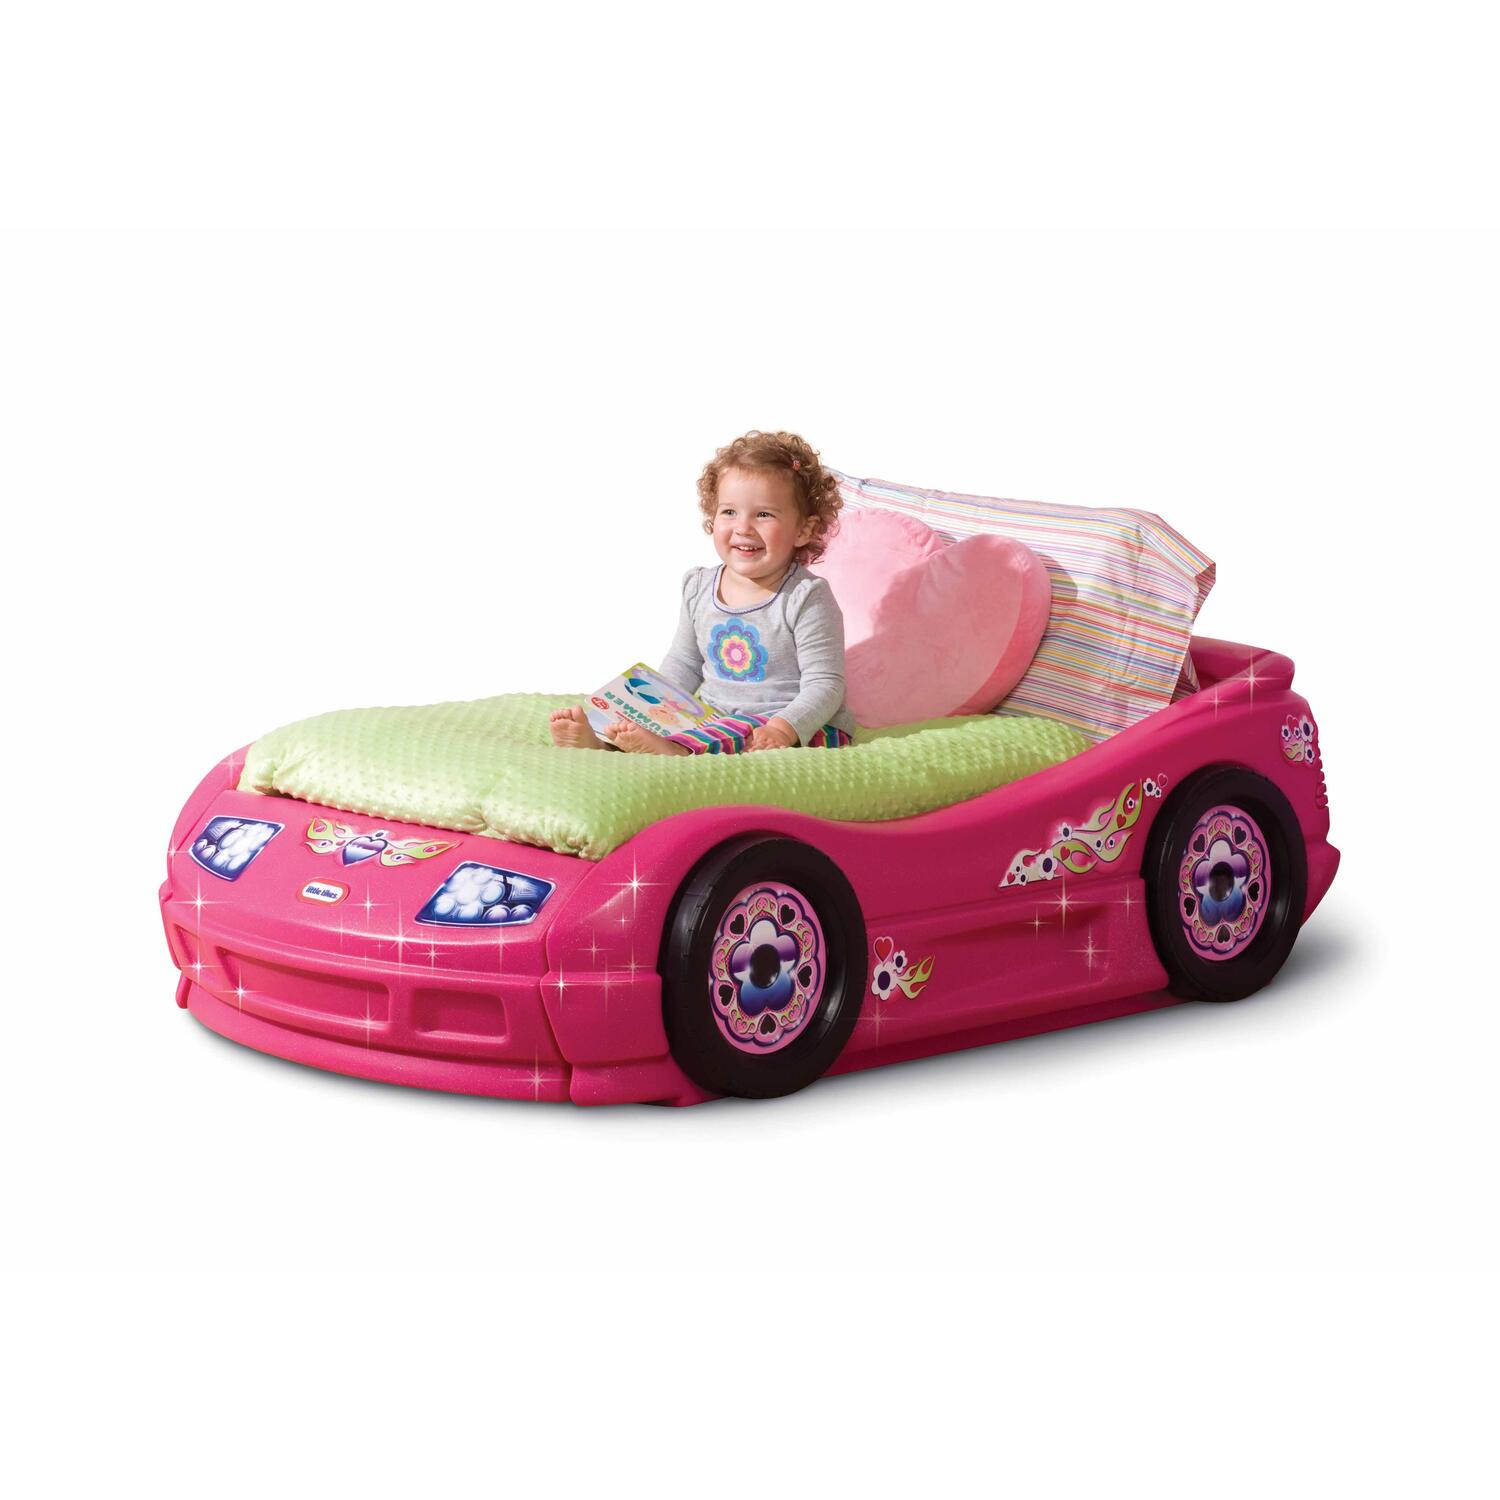 Little Tikes Princess Pink Toddler Roadster Bed By OJ